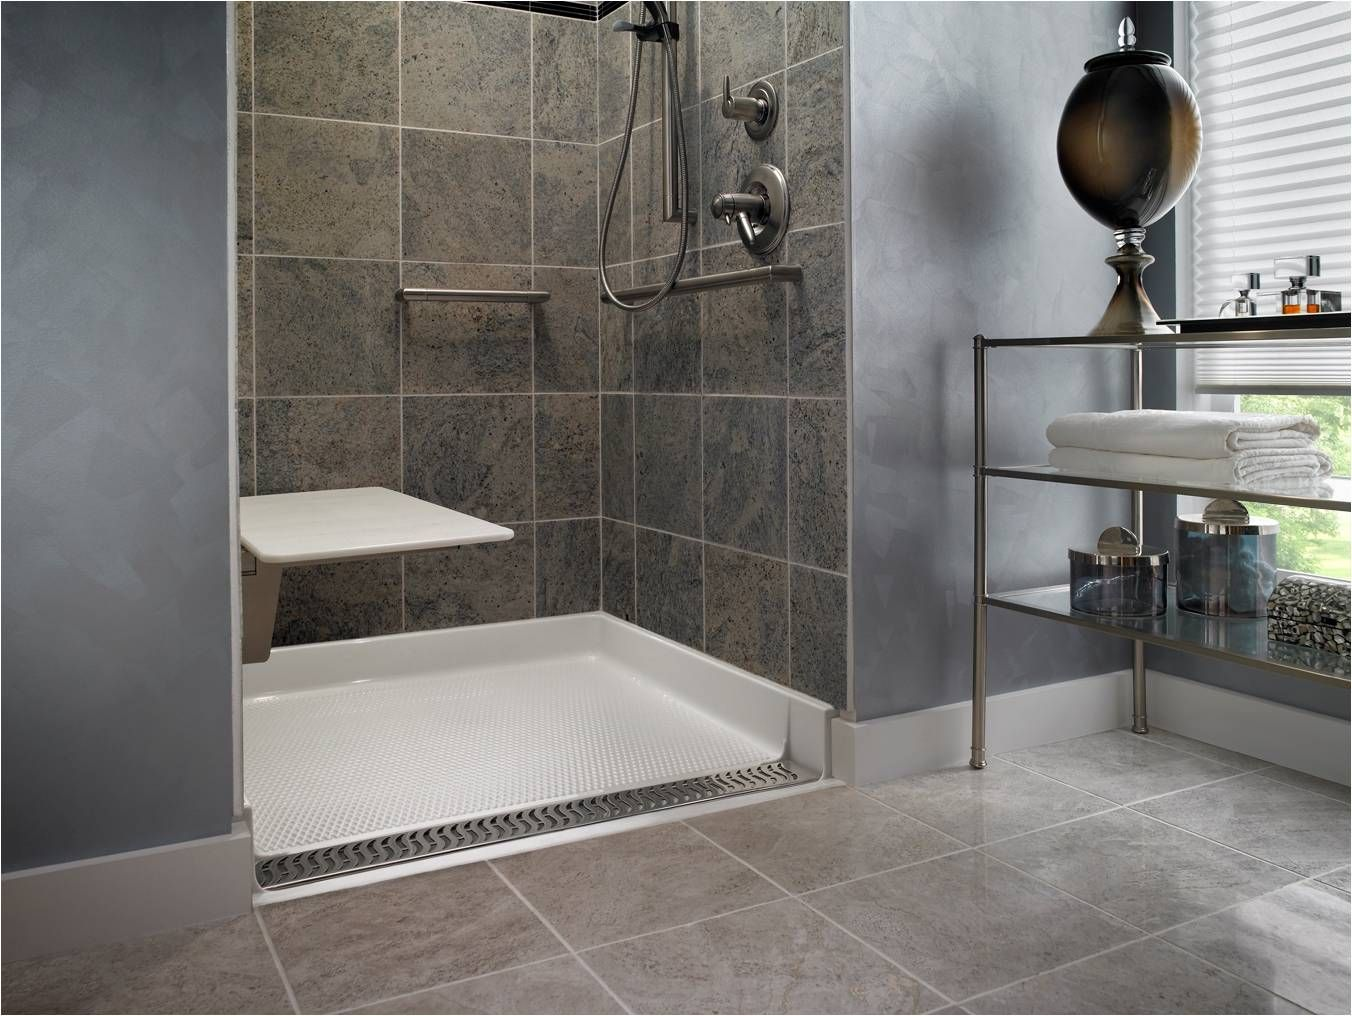 Tile Zero Threshold Shower Universaldesigntips Learn More About Universal Design At Http